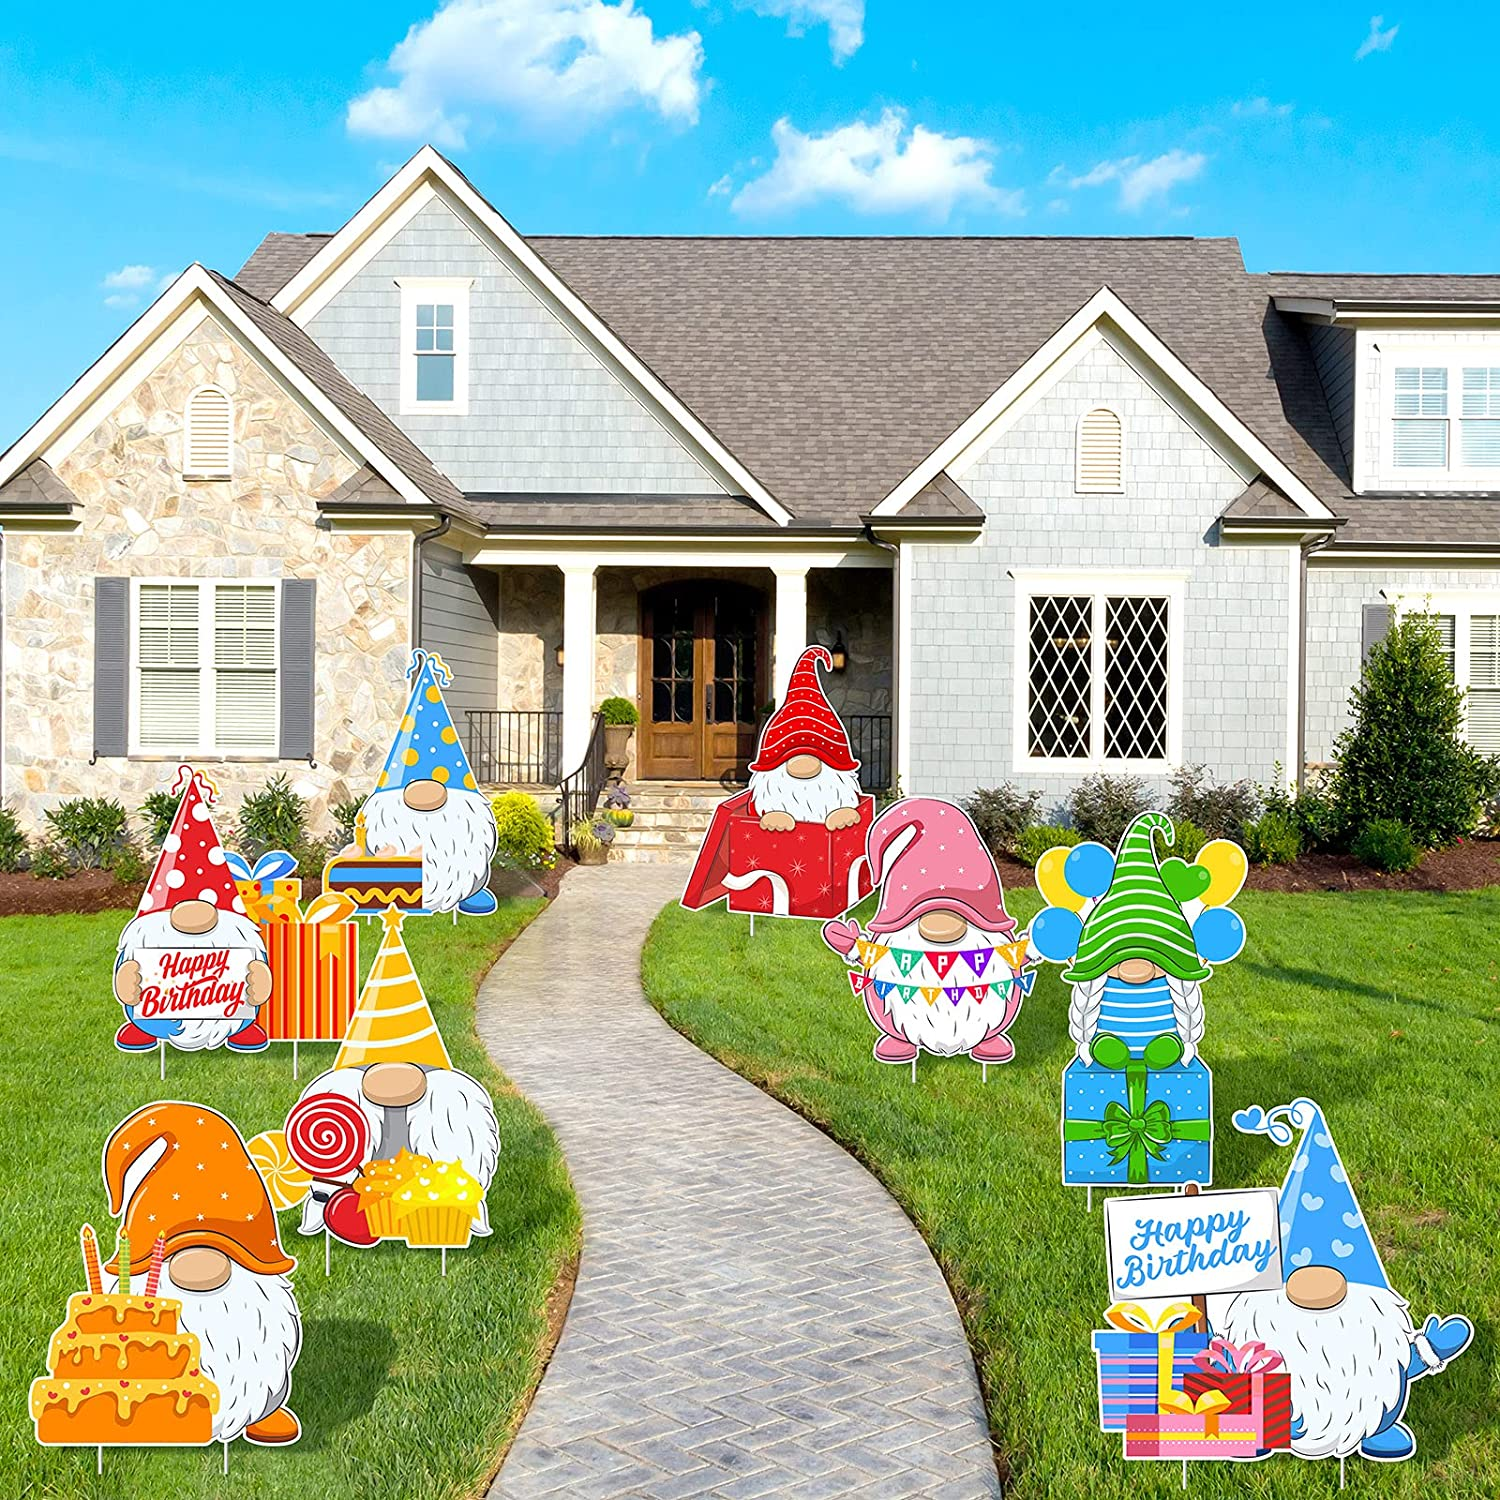 ELCOHO 8 Pieces Happy Birthday Gnomes Garden Flag Yard Party Signs with 16 Stakes Support Banners Supplies for Outdoor Lawn or Party Background Decorations 14 x 14 Inch